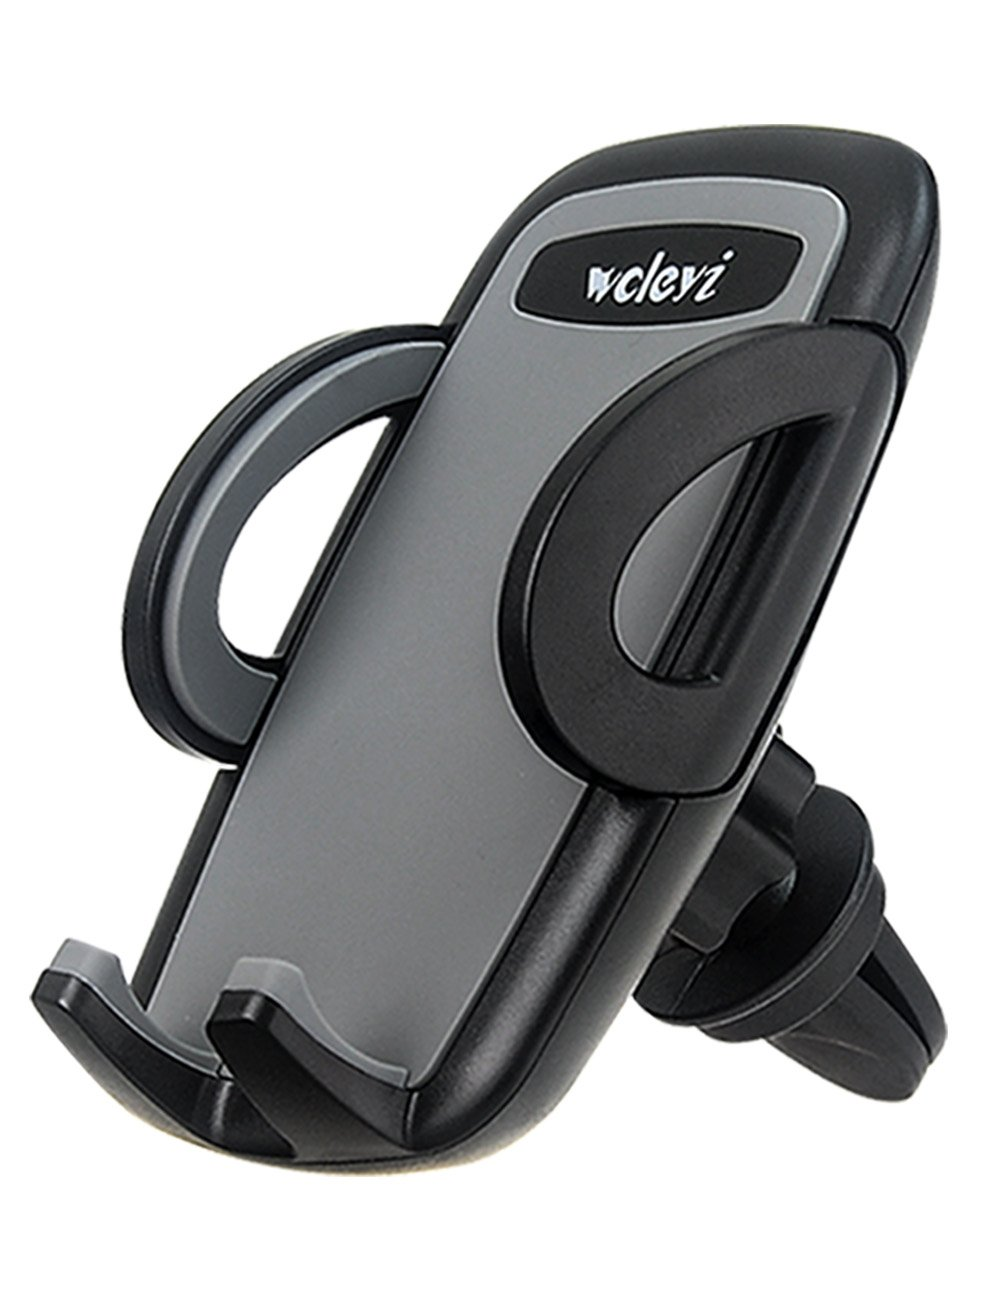 woleyi Car Vent Mount Air Vent Clip - Car Holder for Cell Phones and GPS